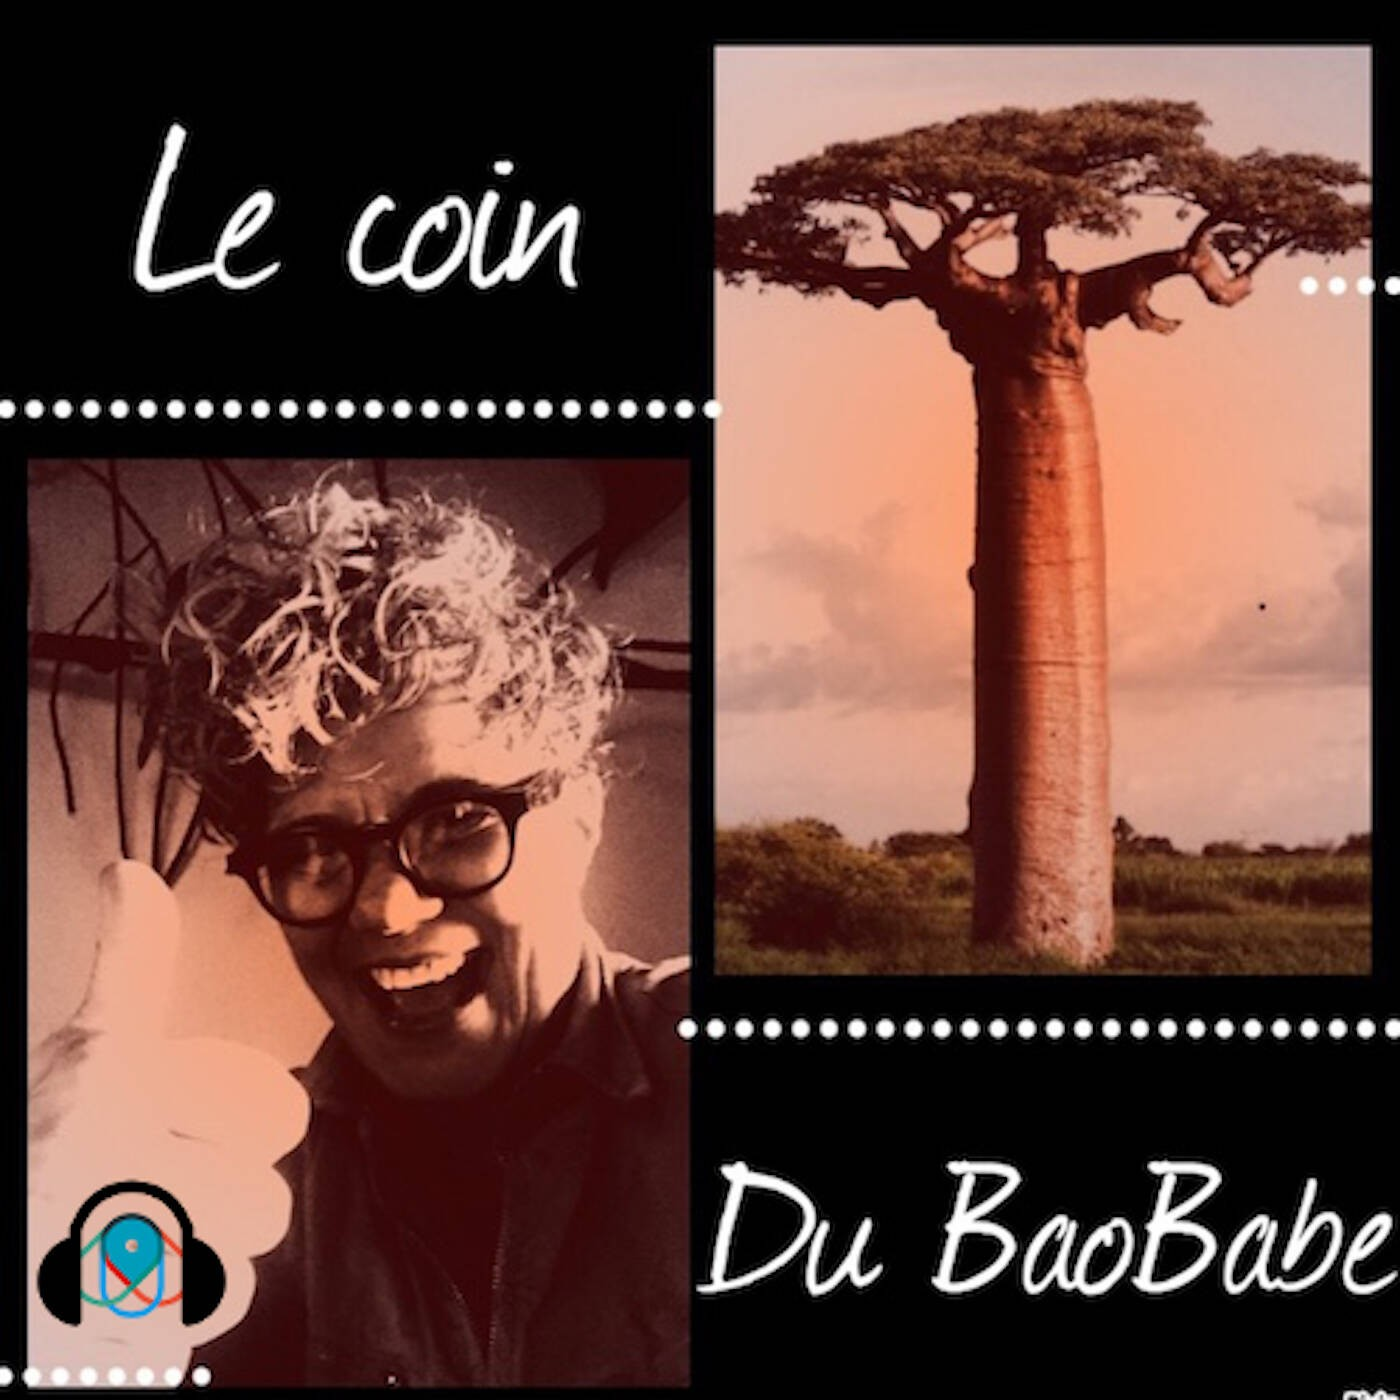 LE COIN DU BAOBABE S1E8 - Question de genre